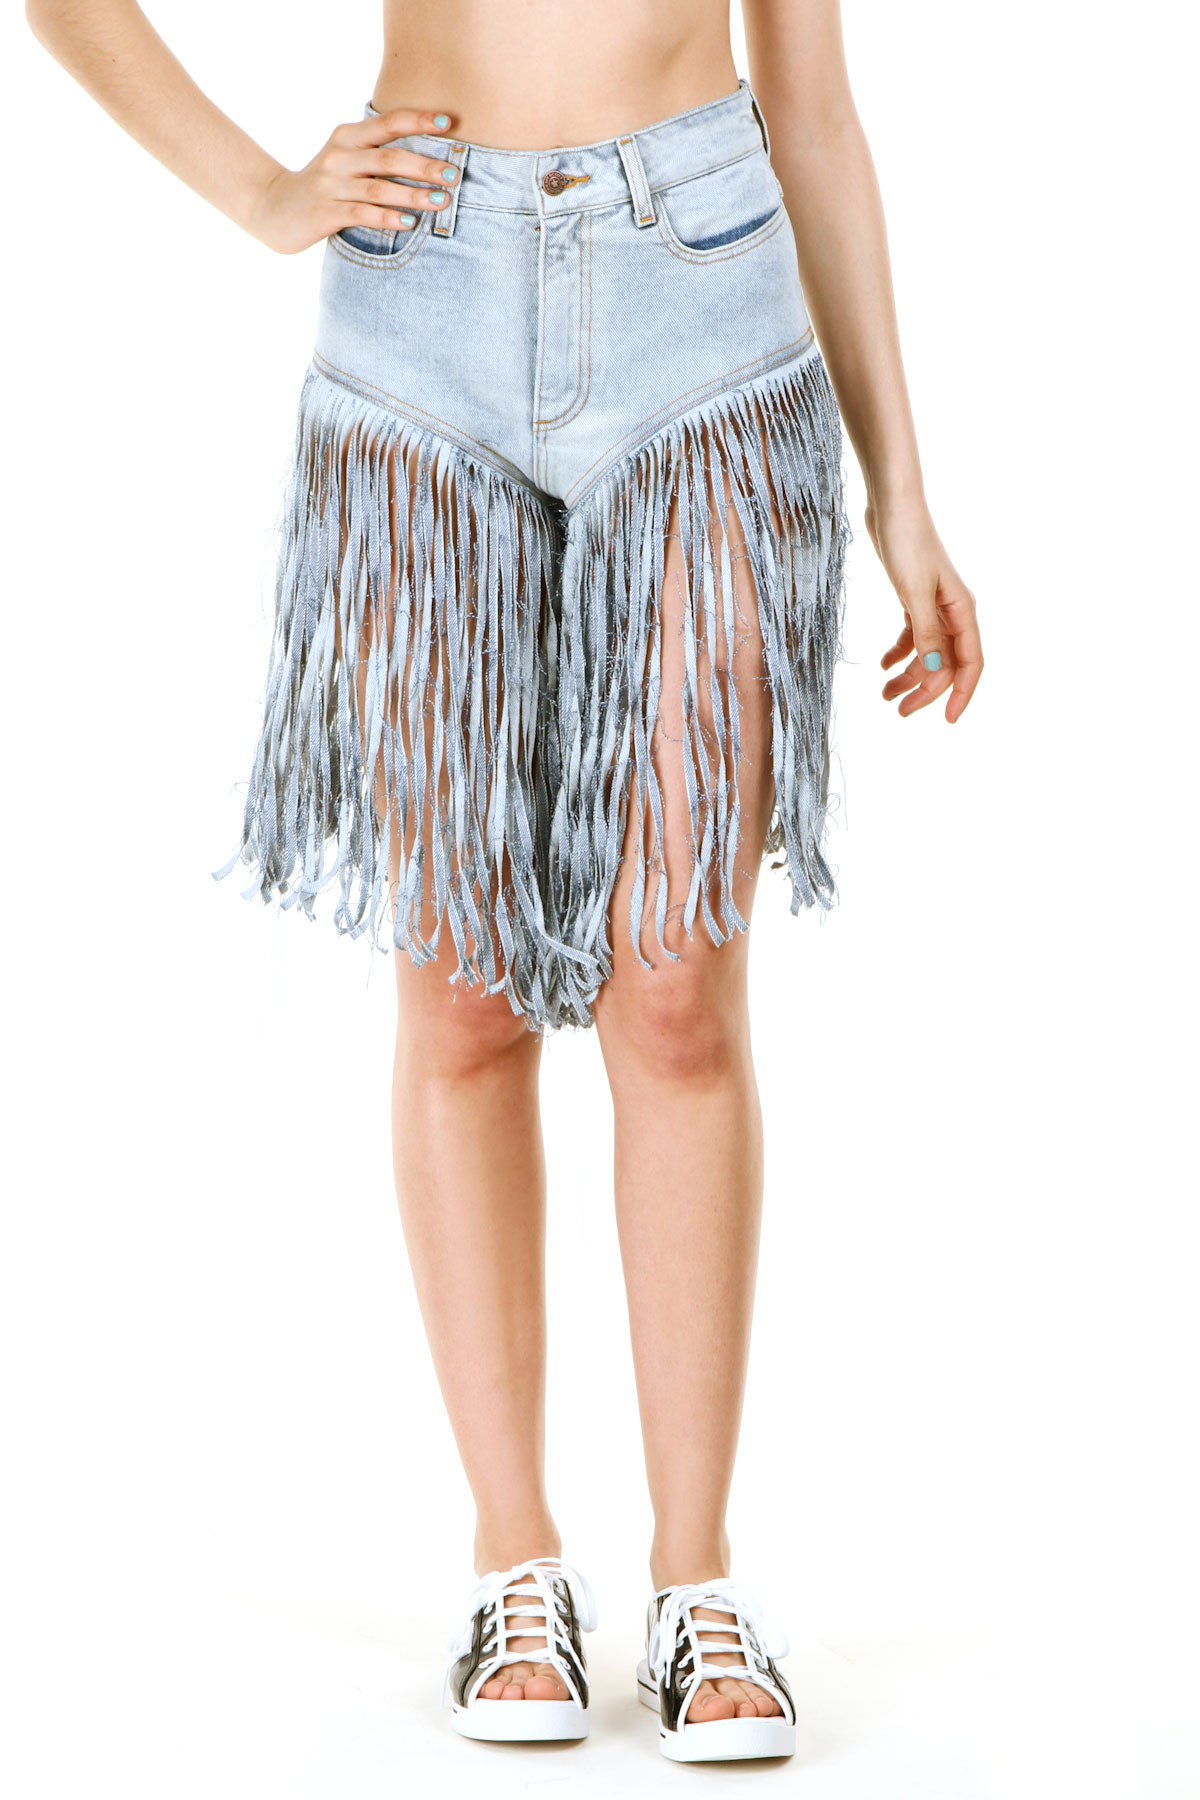 SCOTT FRINGE JEAN SHORTS - WOMEN - BOTTOMS - JEREMY SCOTT ...